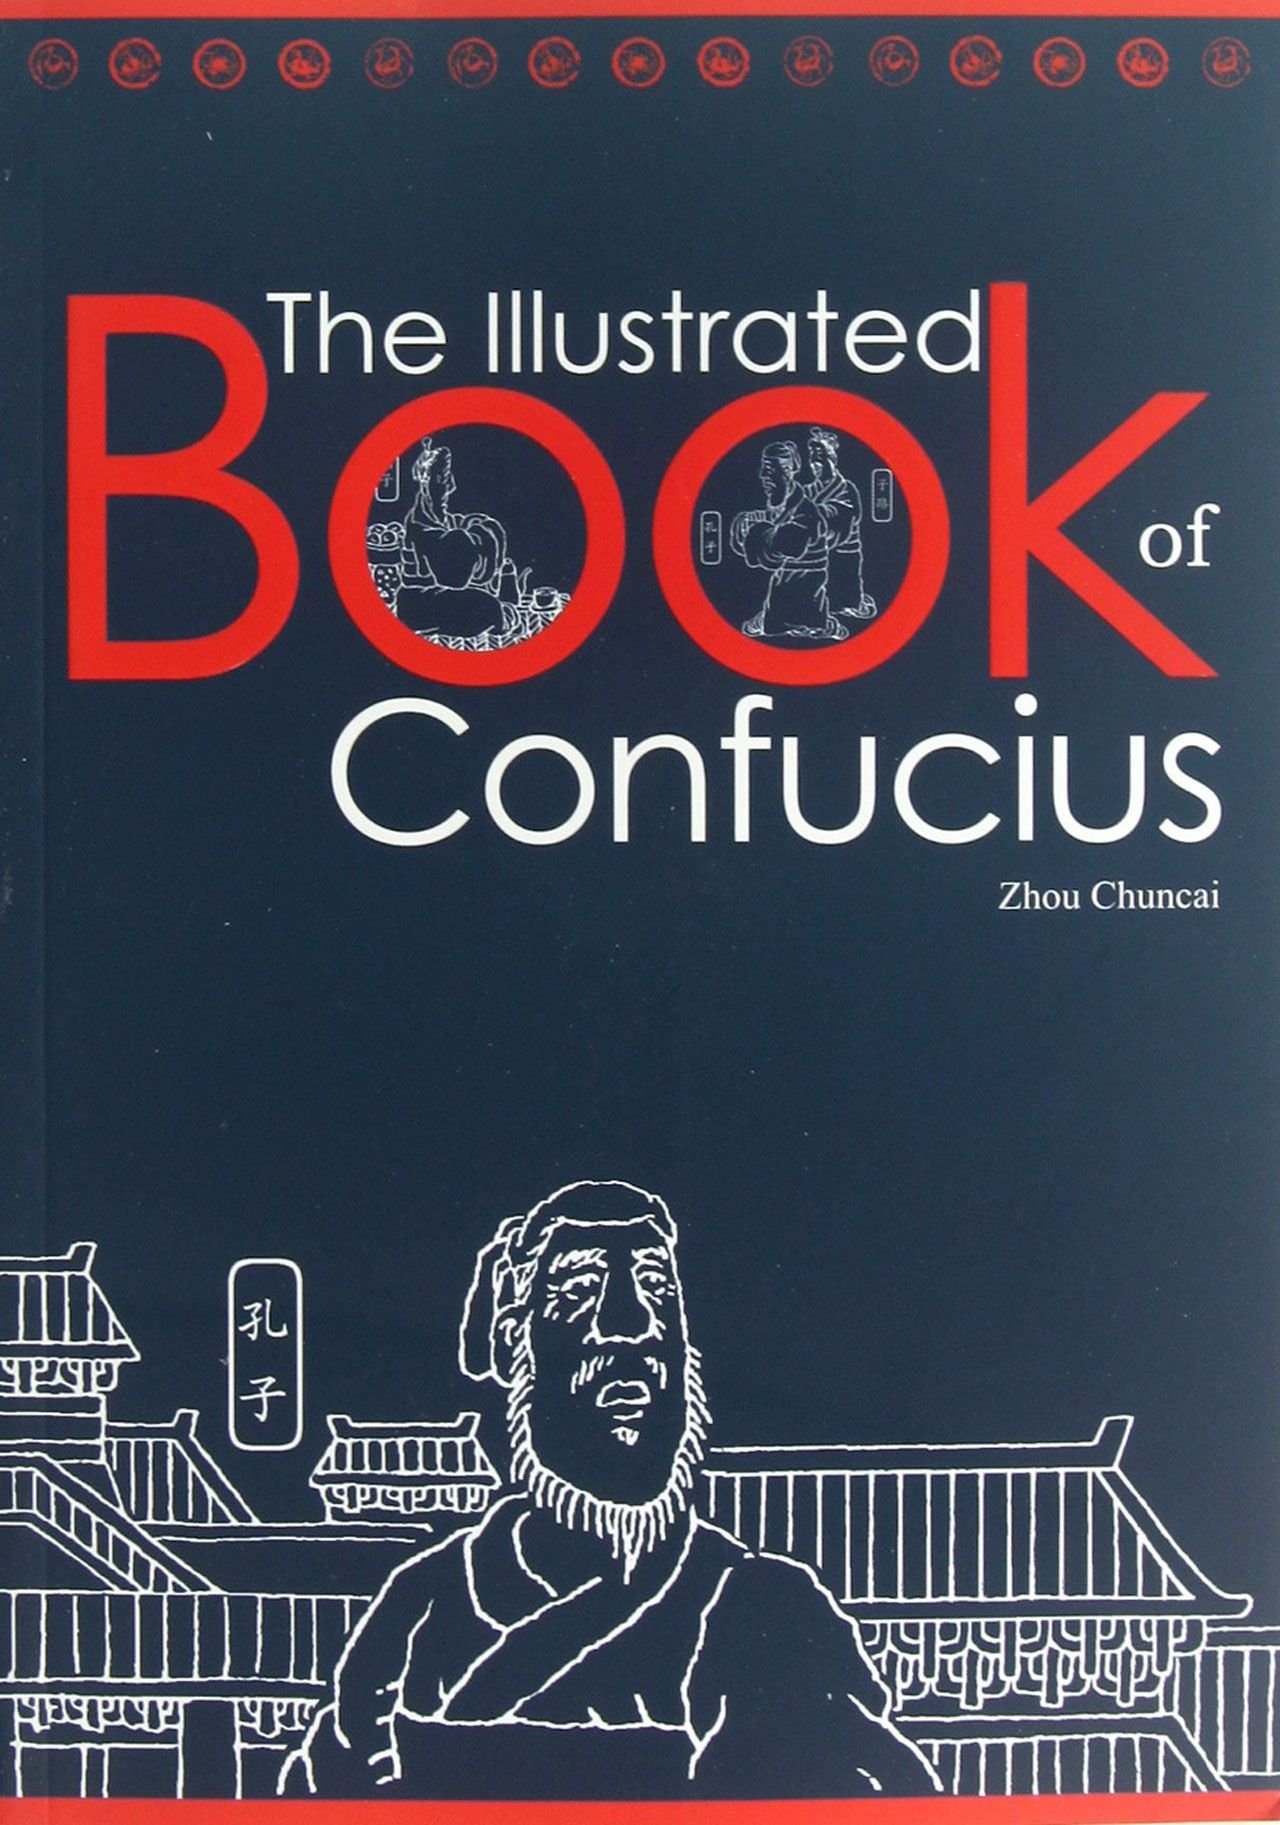 The IIIustrated Book of Confucius